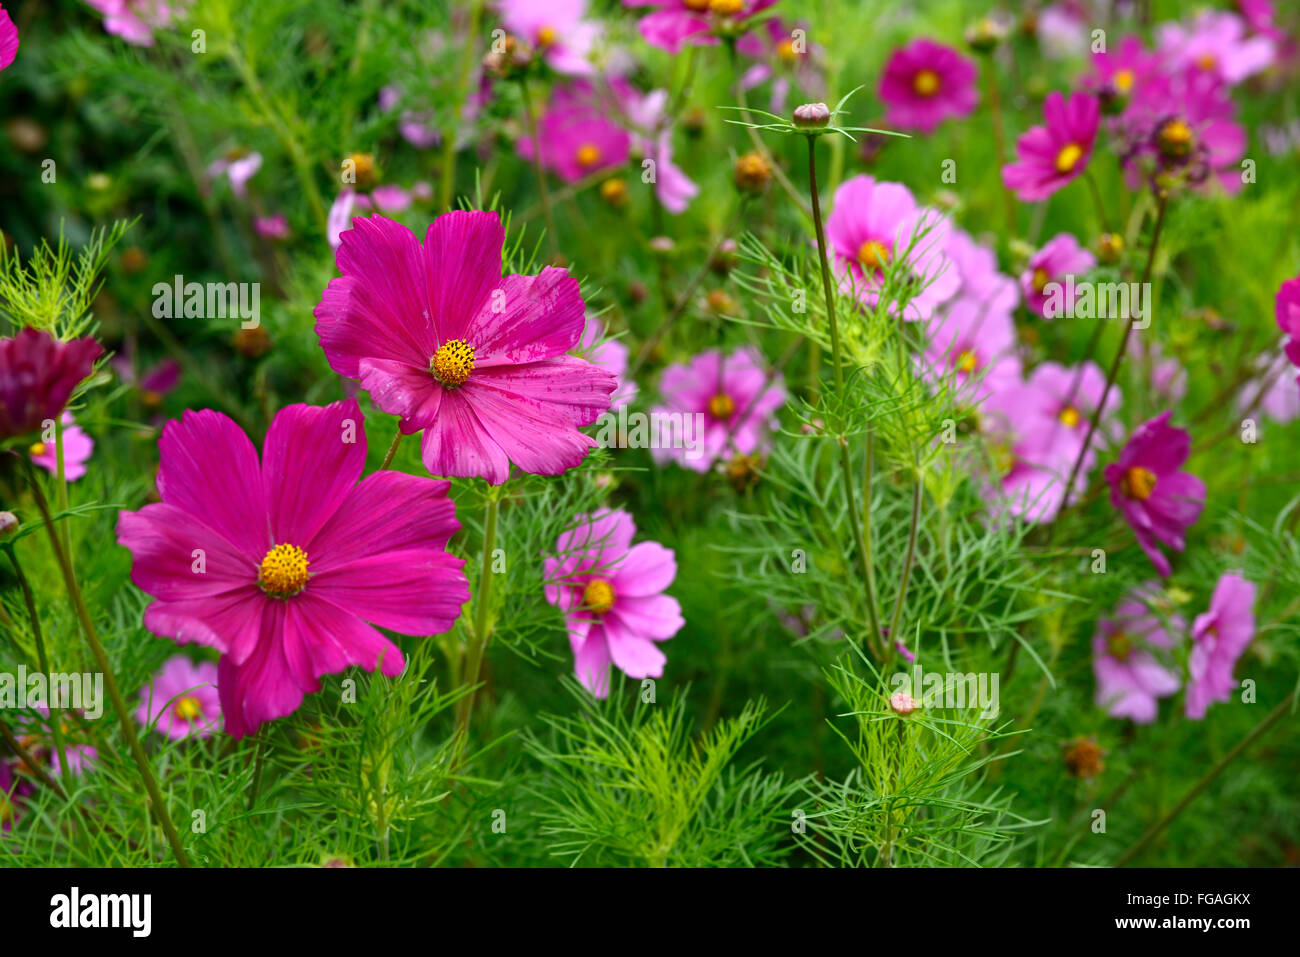 Annual Flowers Flower Bed Stock Photos Annual Flowers Flower Bed